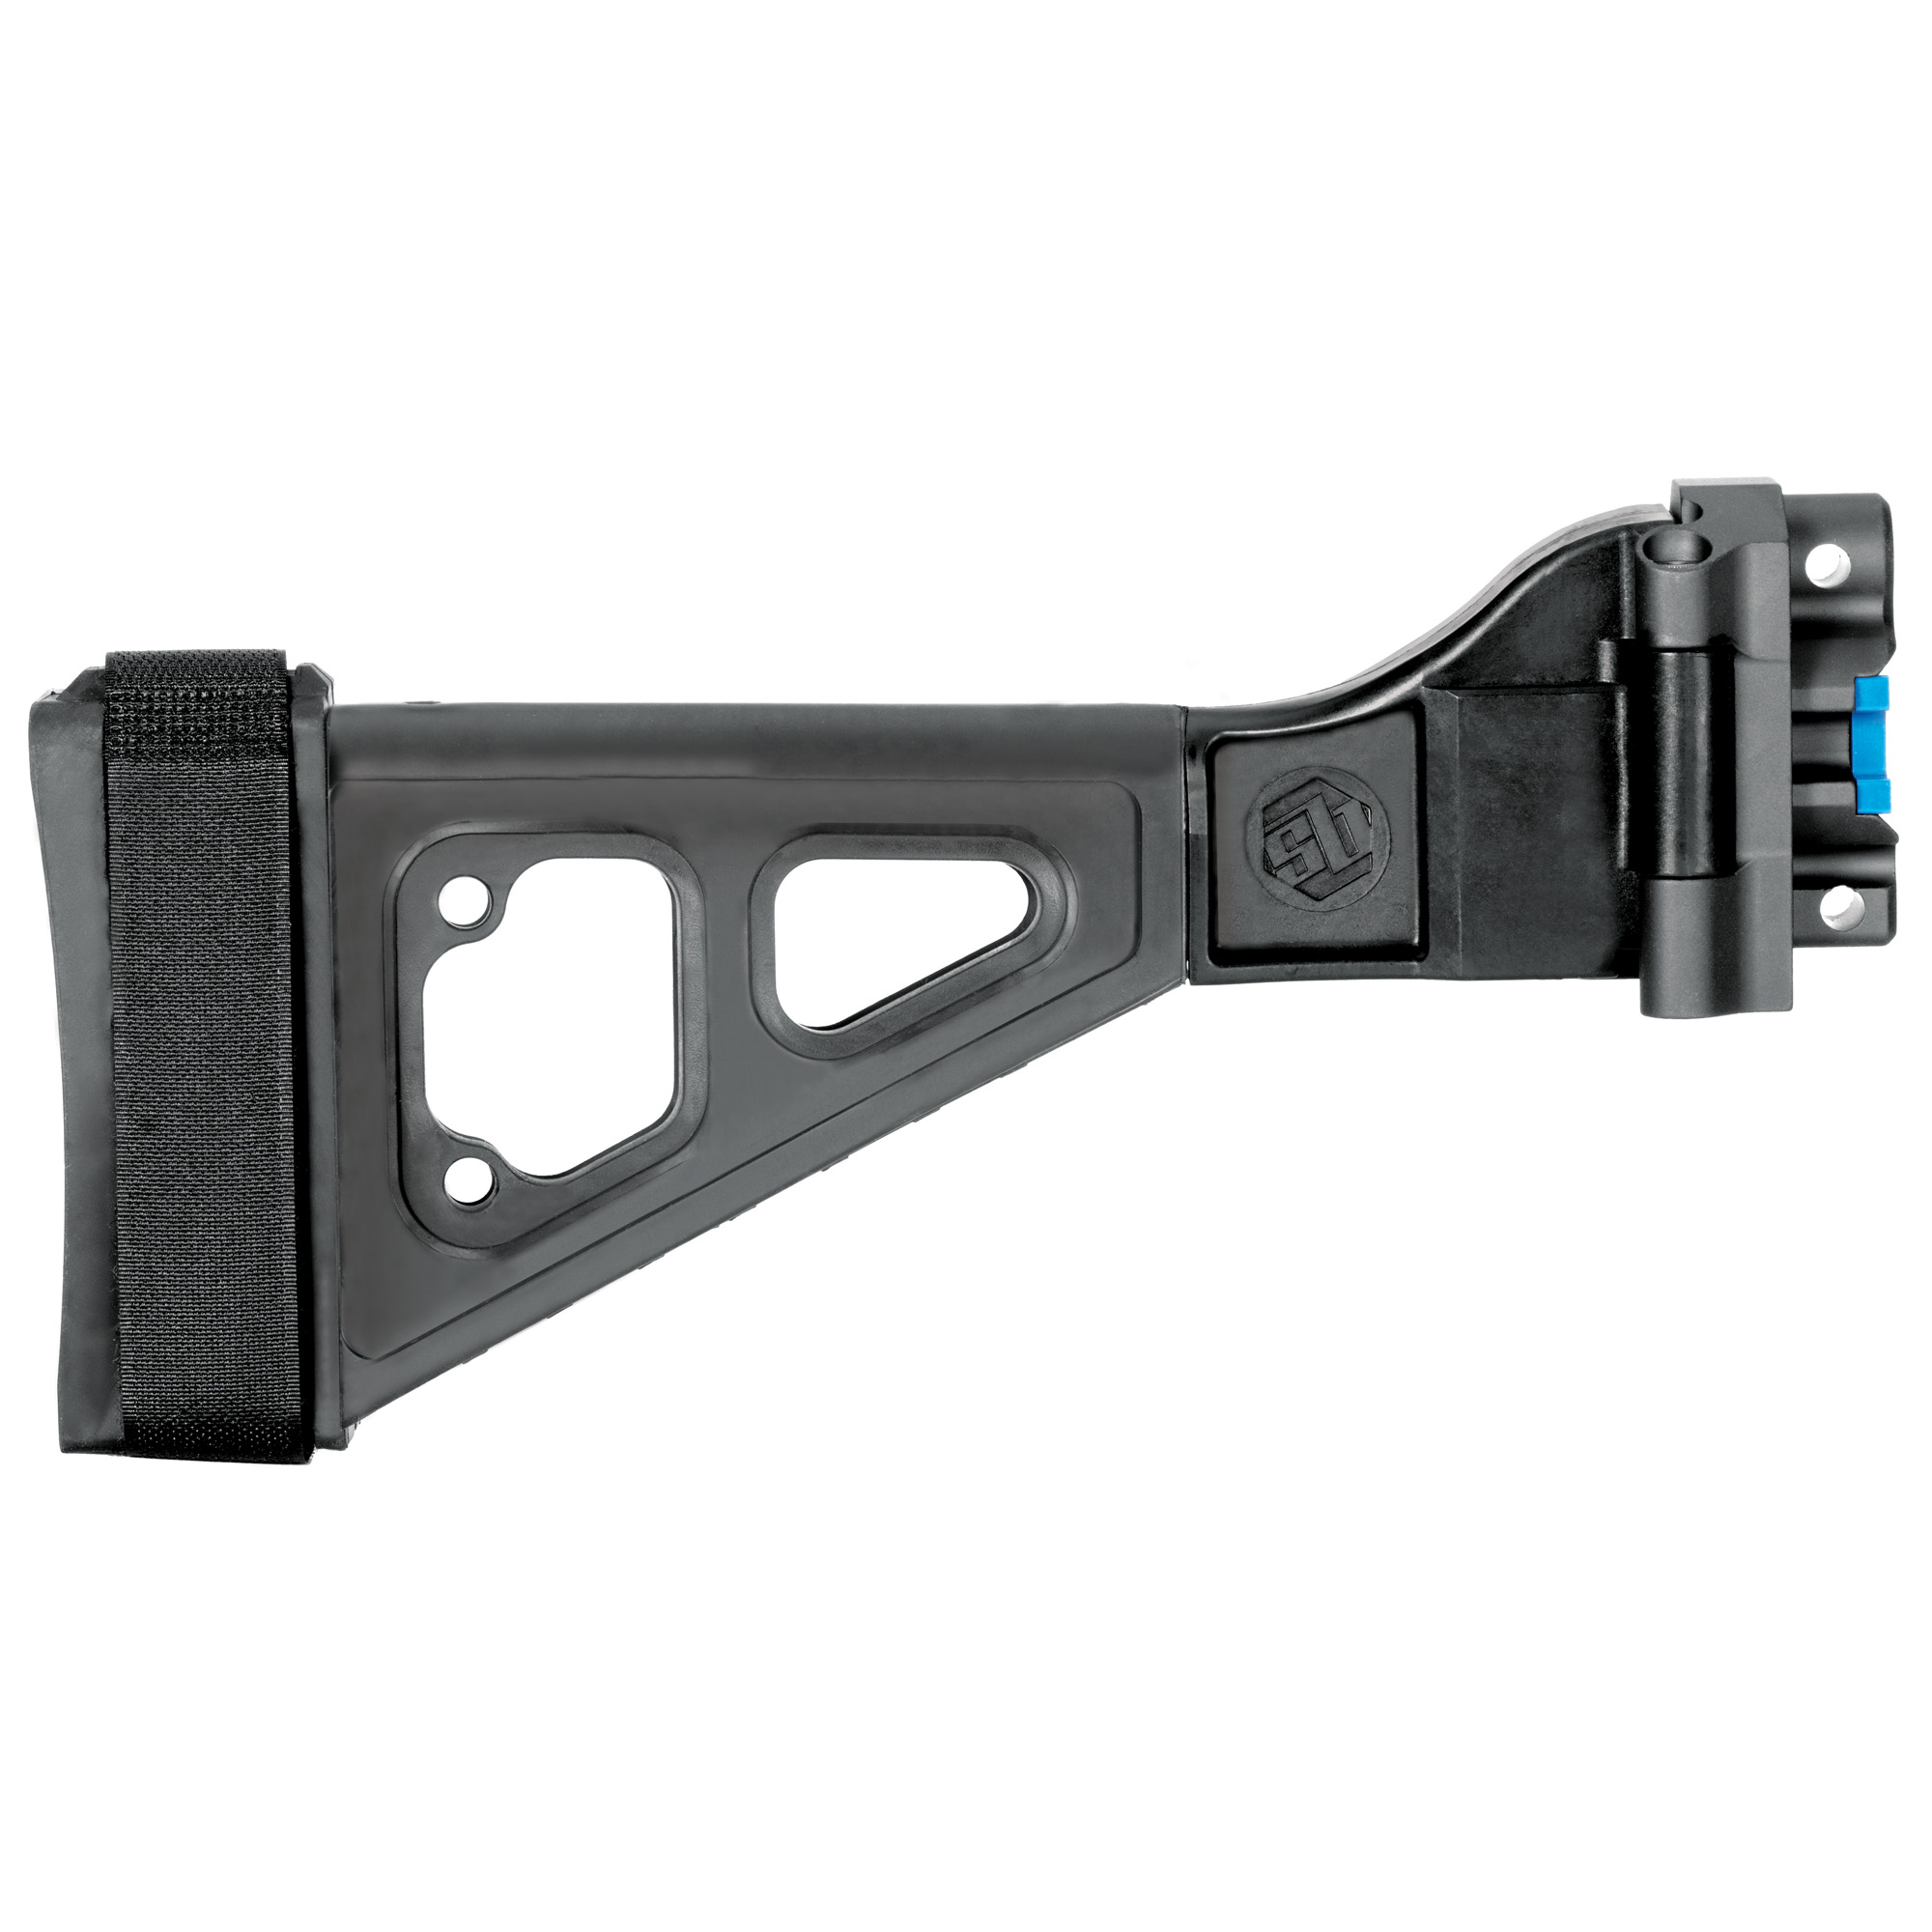 """Inspired by the iconic B&T design for HK platforms"""" the SBT5KA enhances your MP5K with an integral"""" machined aluminum side-folding mechanism. Fits HK MP5K/SP89 Clones"""" SP5K; Includes an adjustable nylon strap."""